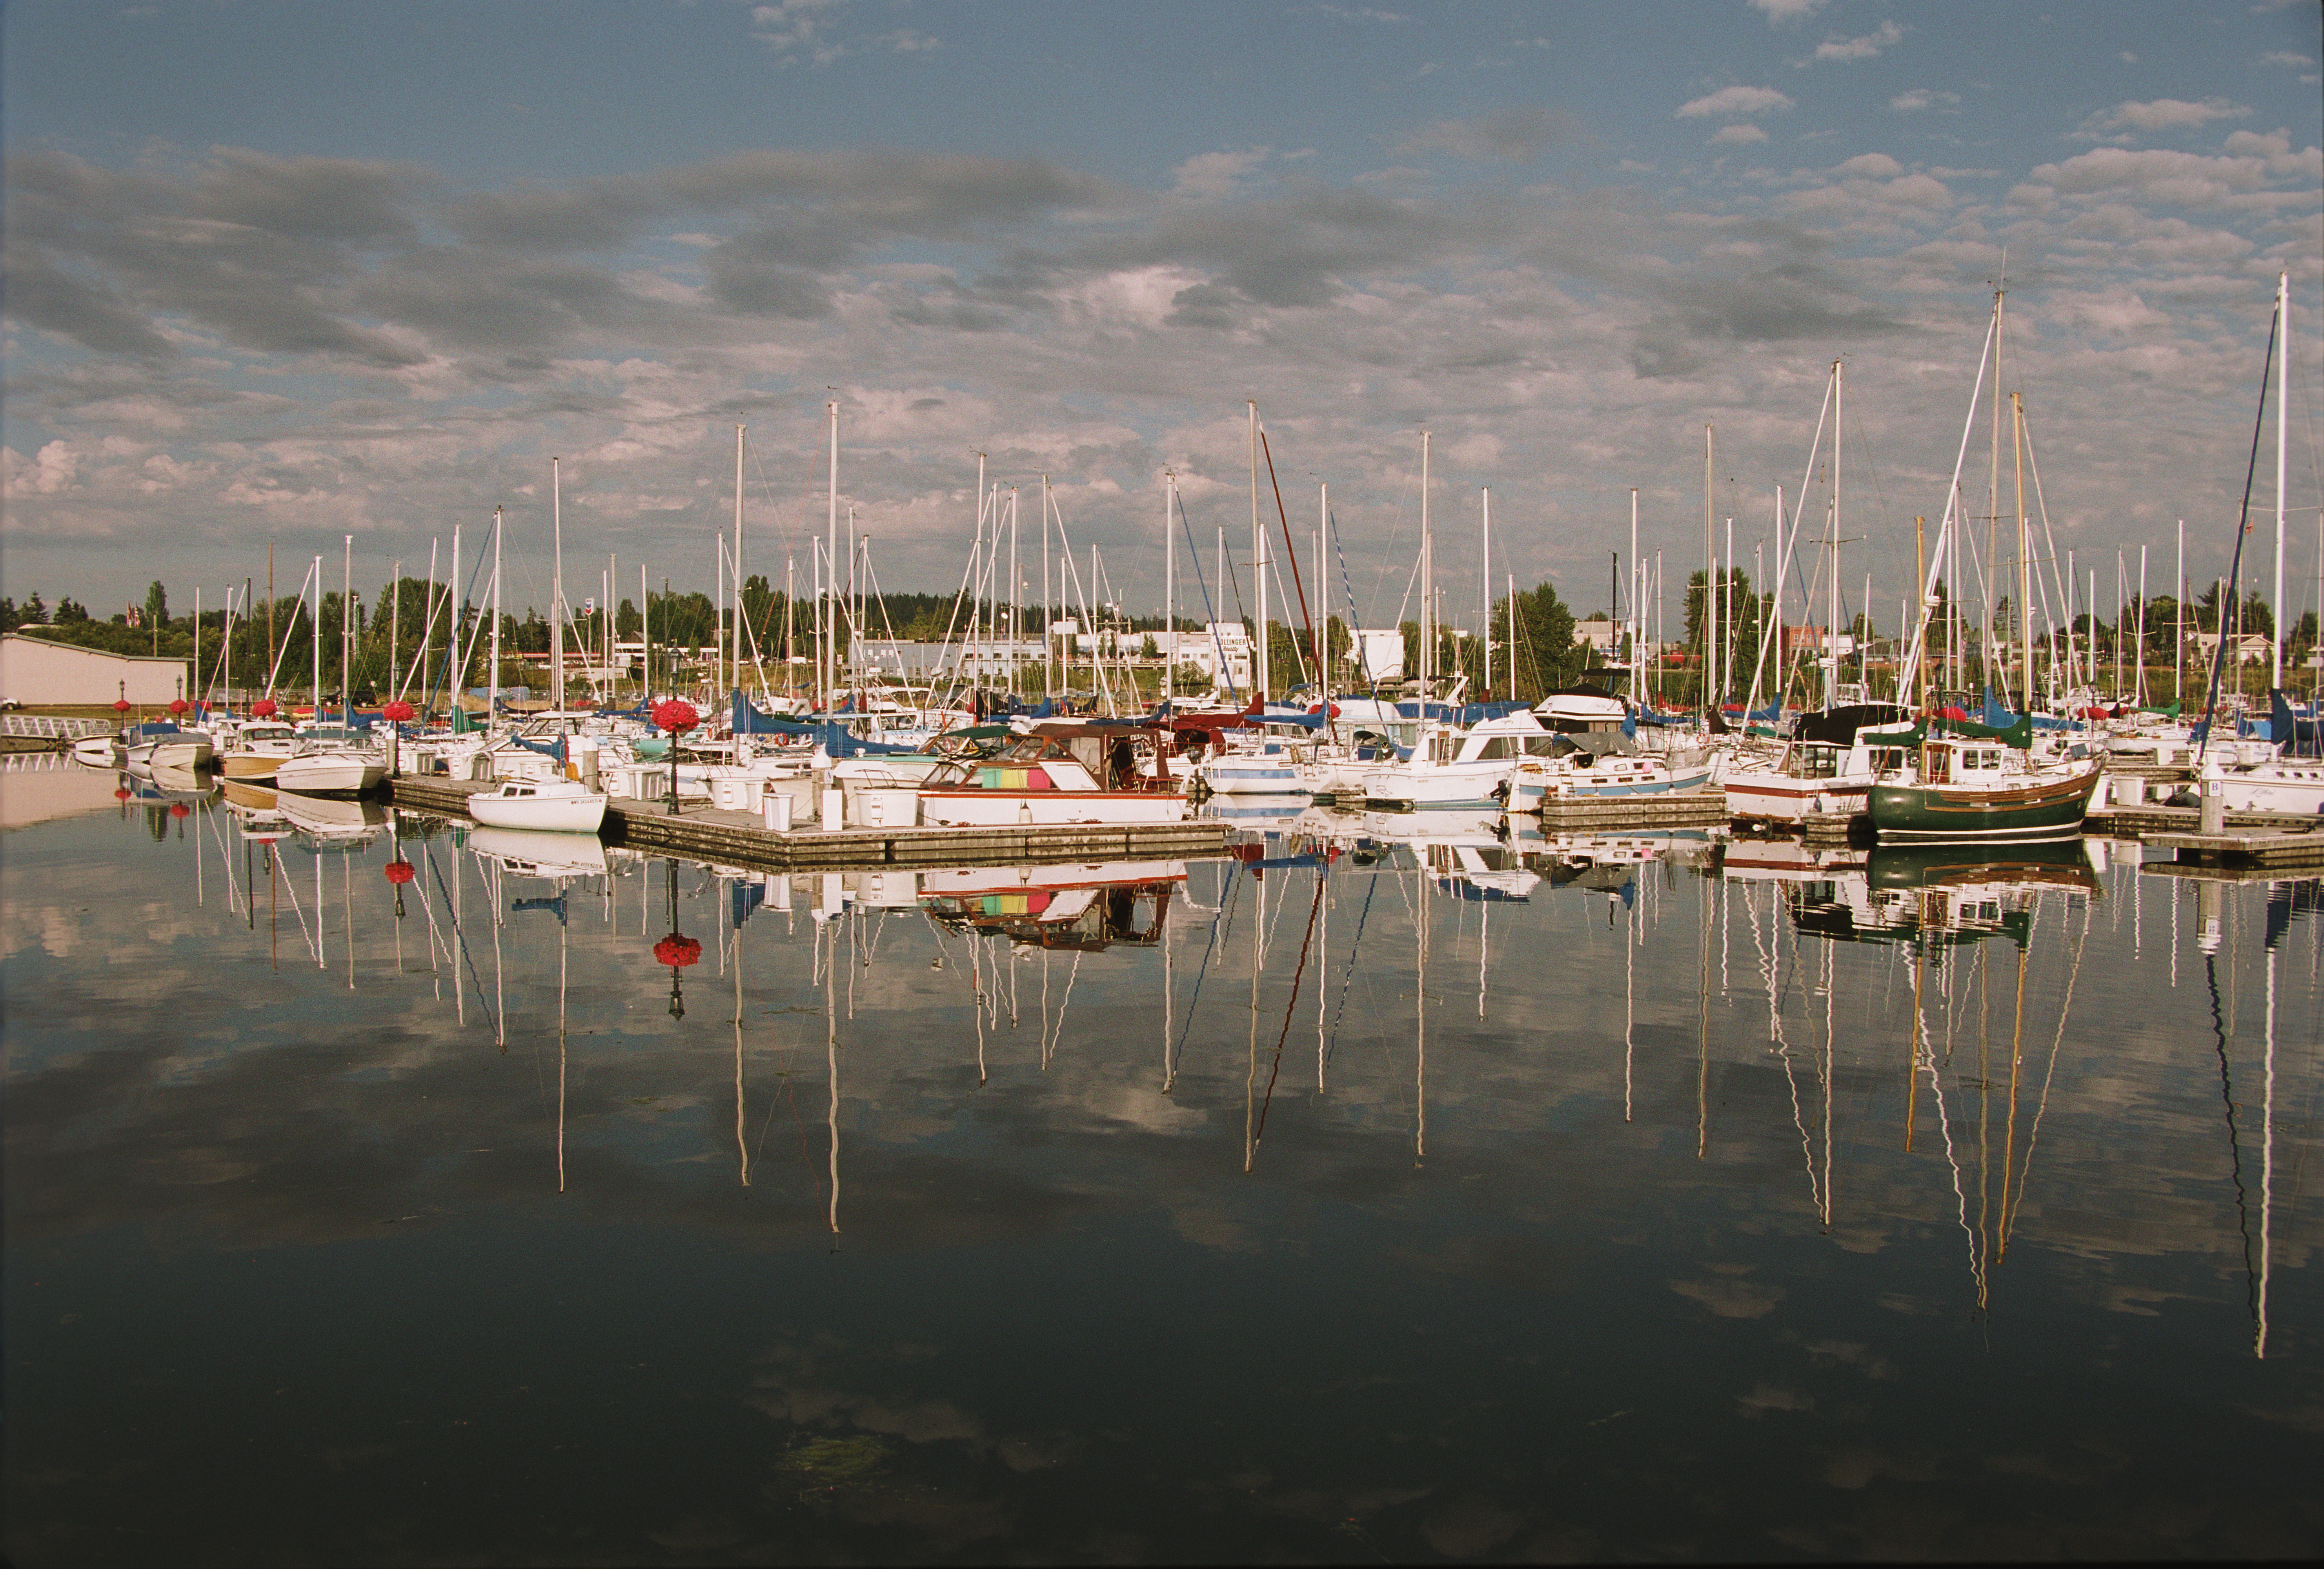 Boats in Blaine Harbor